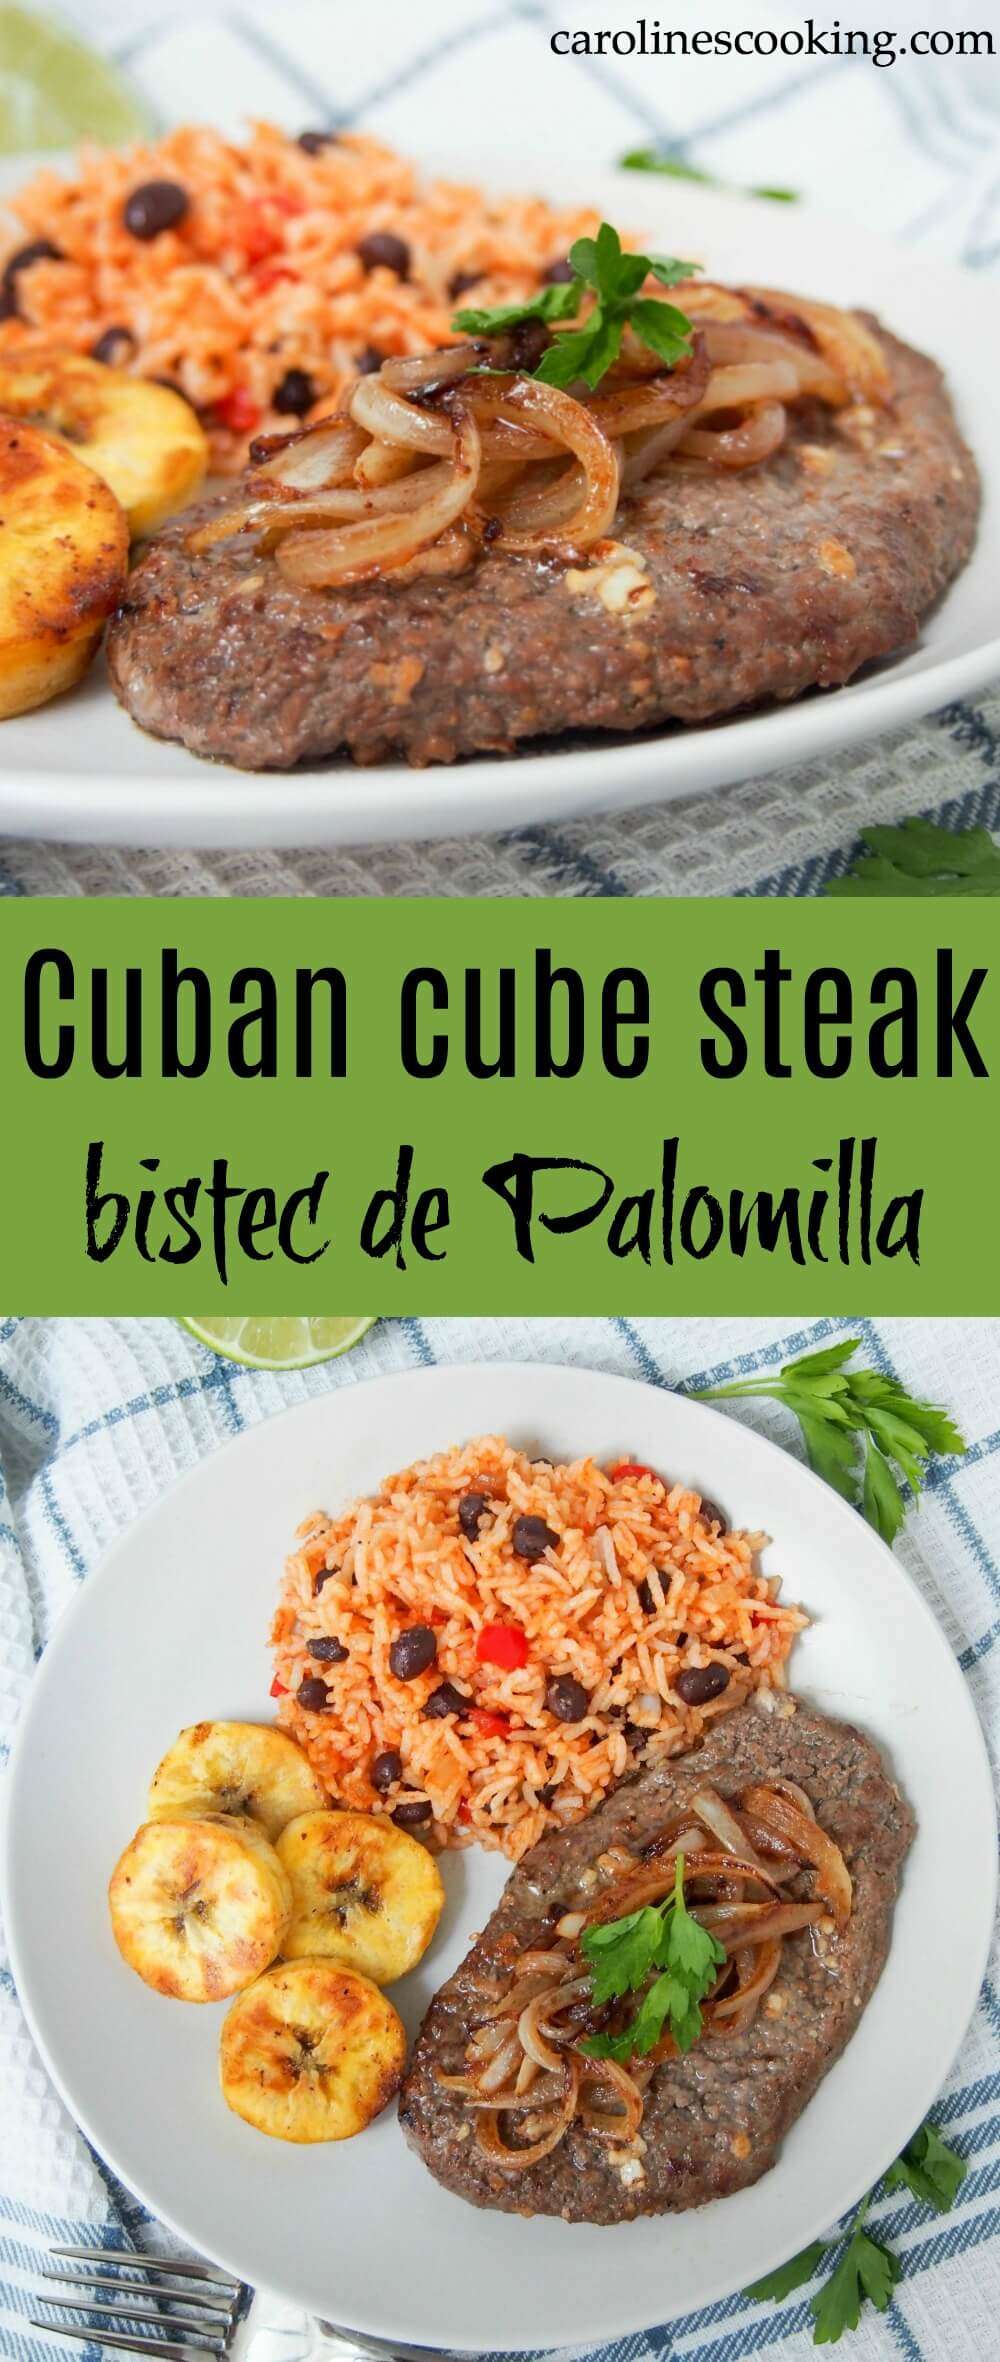 Cuban cube steak - Bistec de Palomilla is such an easy way to prepare cube steak with great results. You'll be amazed at how the simple lime and garlic marinade transforms this into a tender, flavorful main.